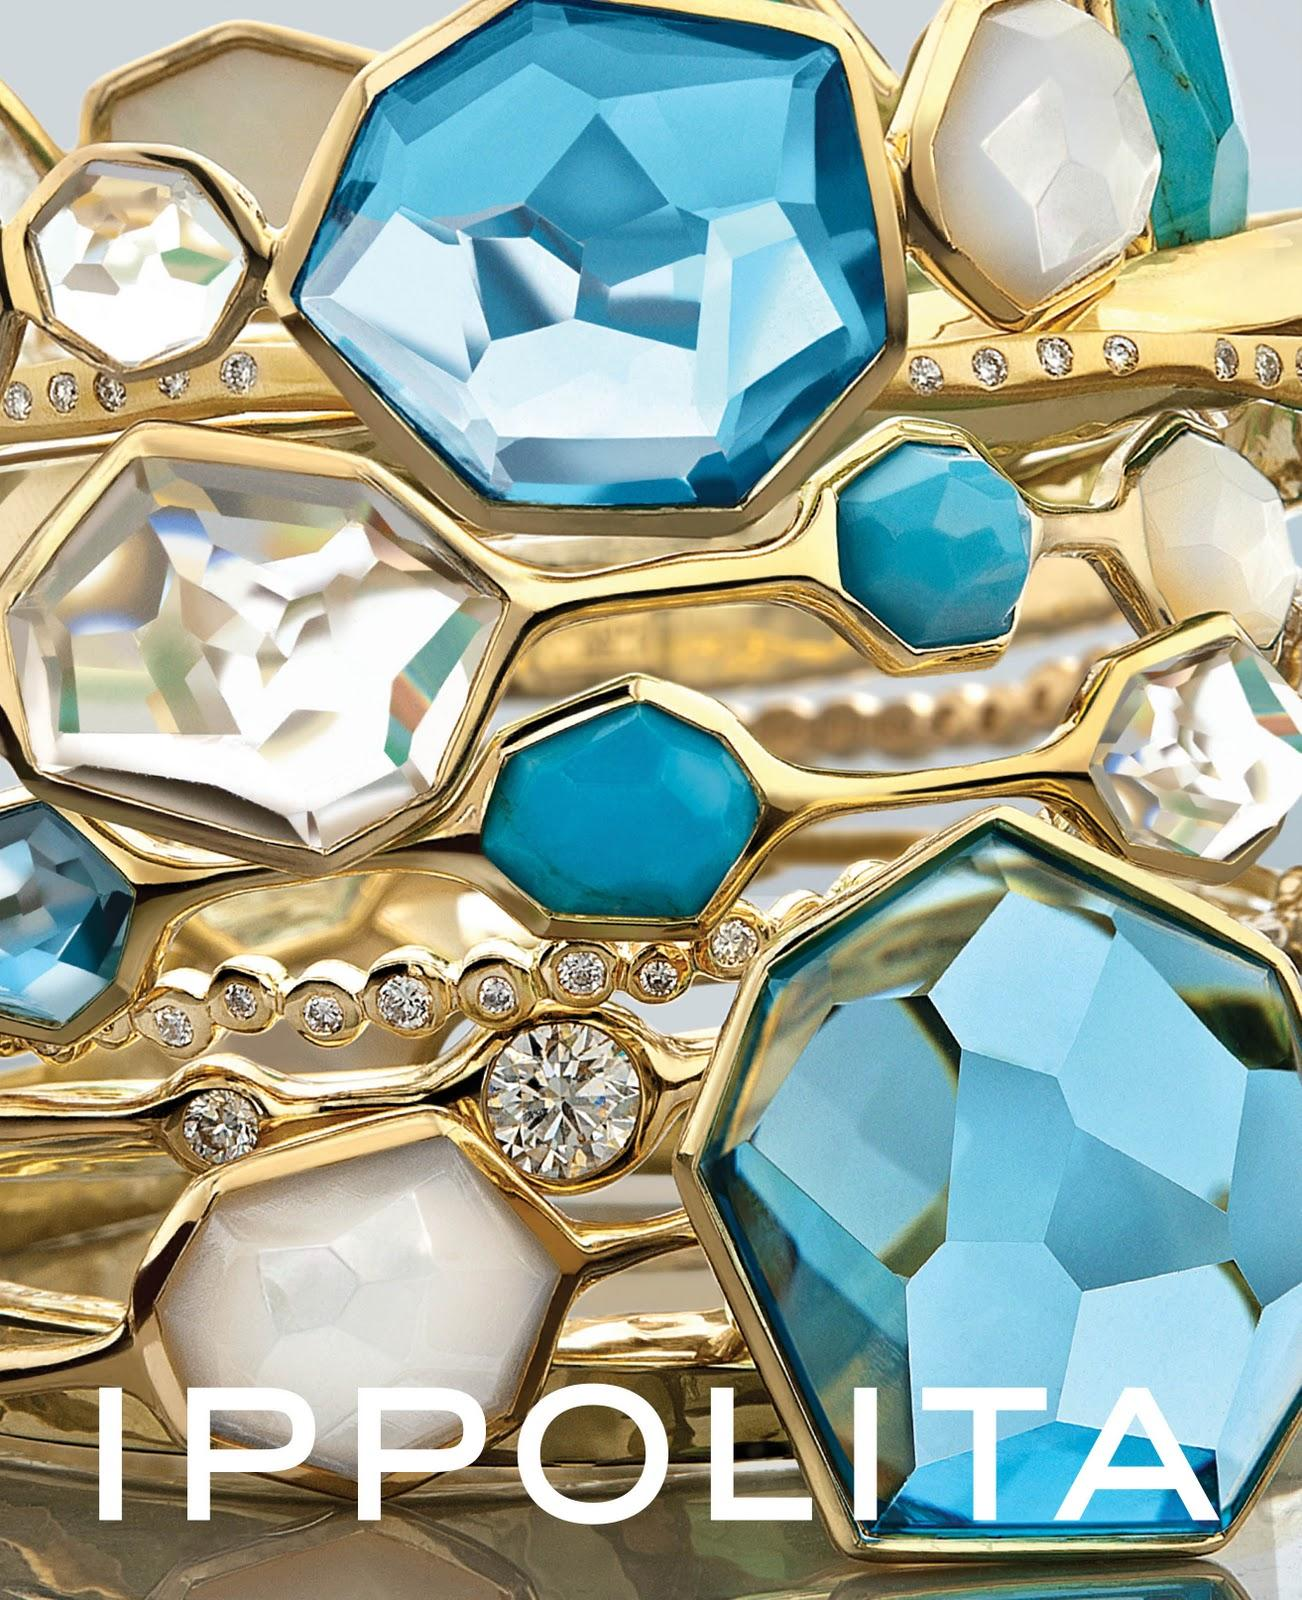 Up to $600 GIFT CARD with Regular-priced Ippolita Items Purchase @ Neiman Marcus